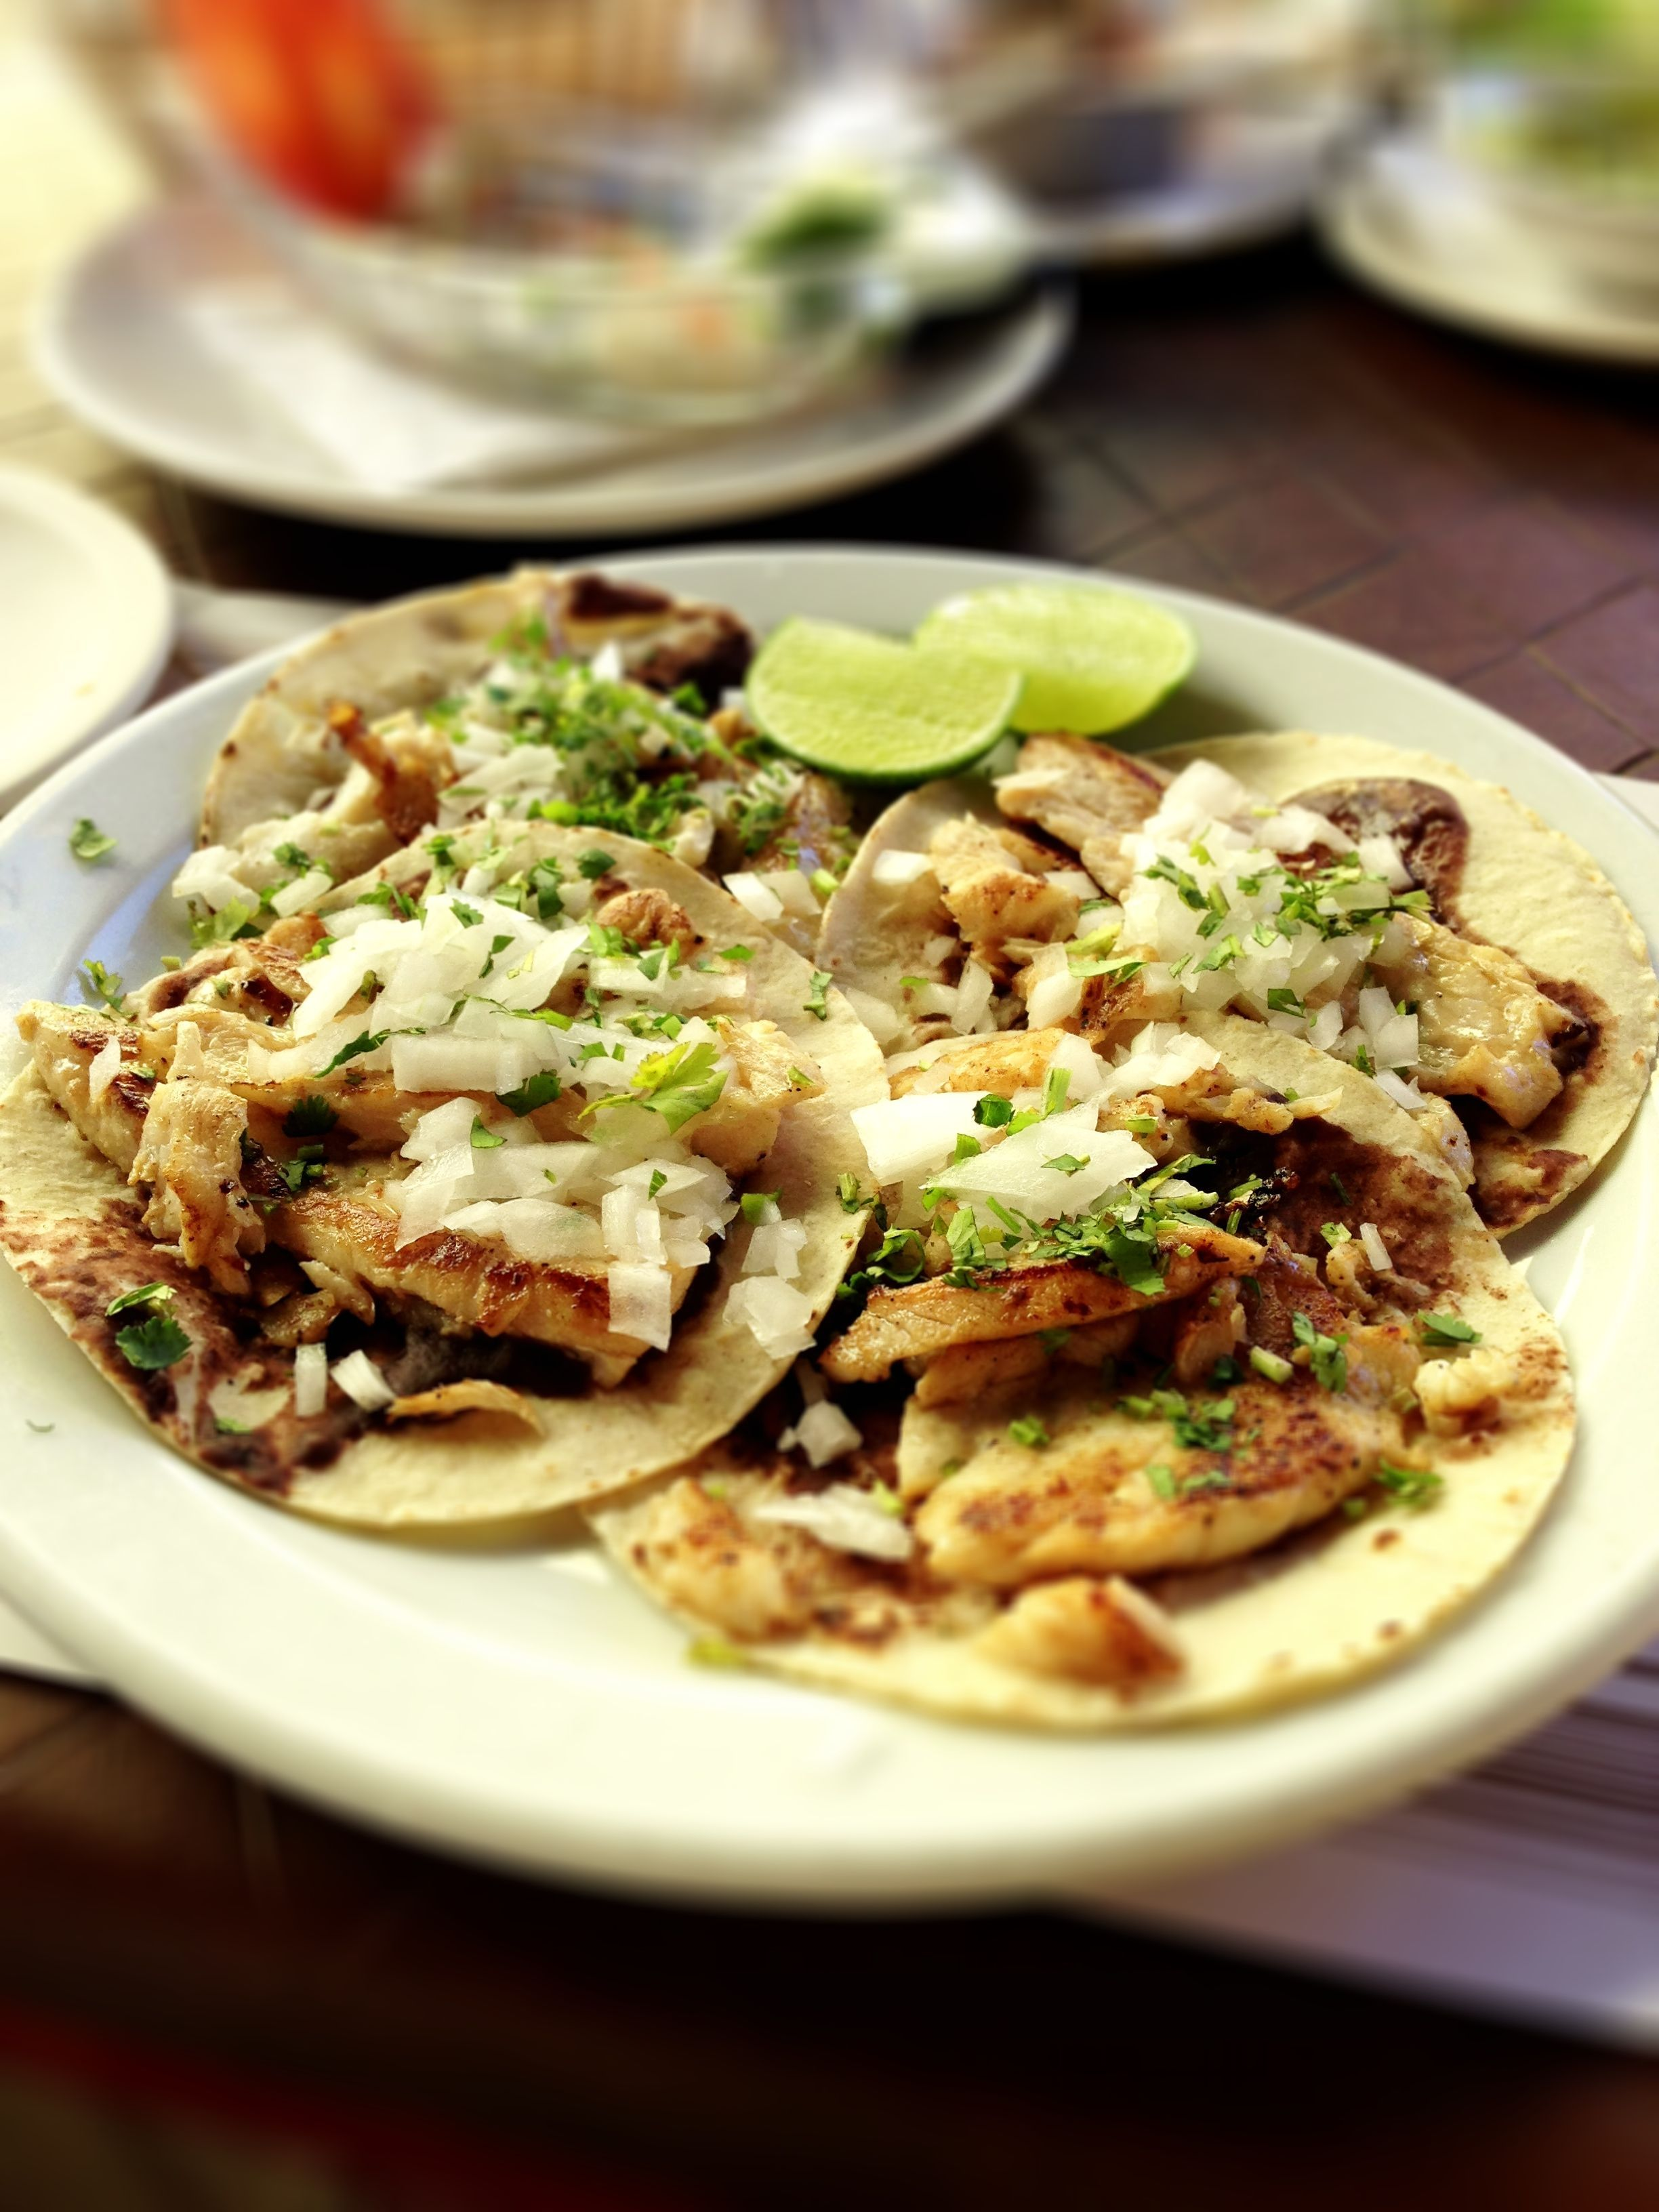 Casa Denis Restaurant In San Miguel De Cozumel Grilled Fish Tacos Snapper Fantastic Food Great Service And Atmosph Food Snapper Recipes Grilled Fish Tacos